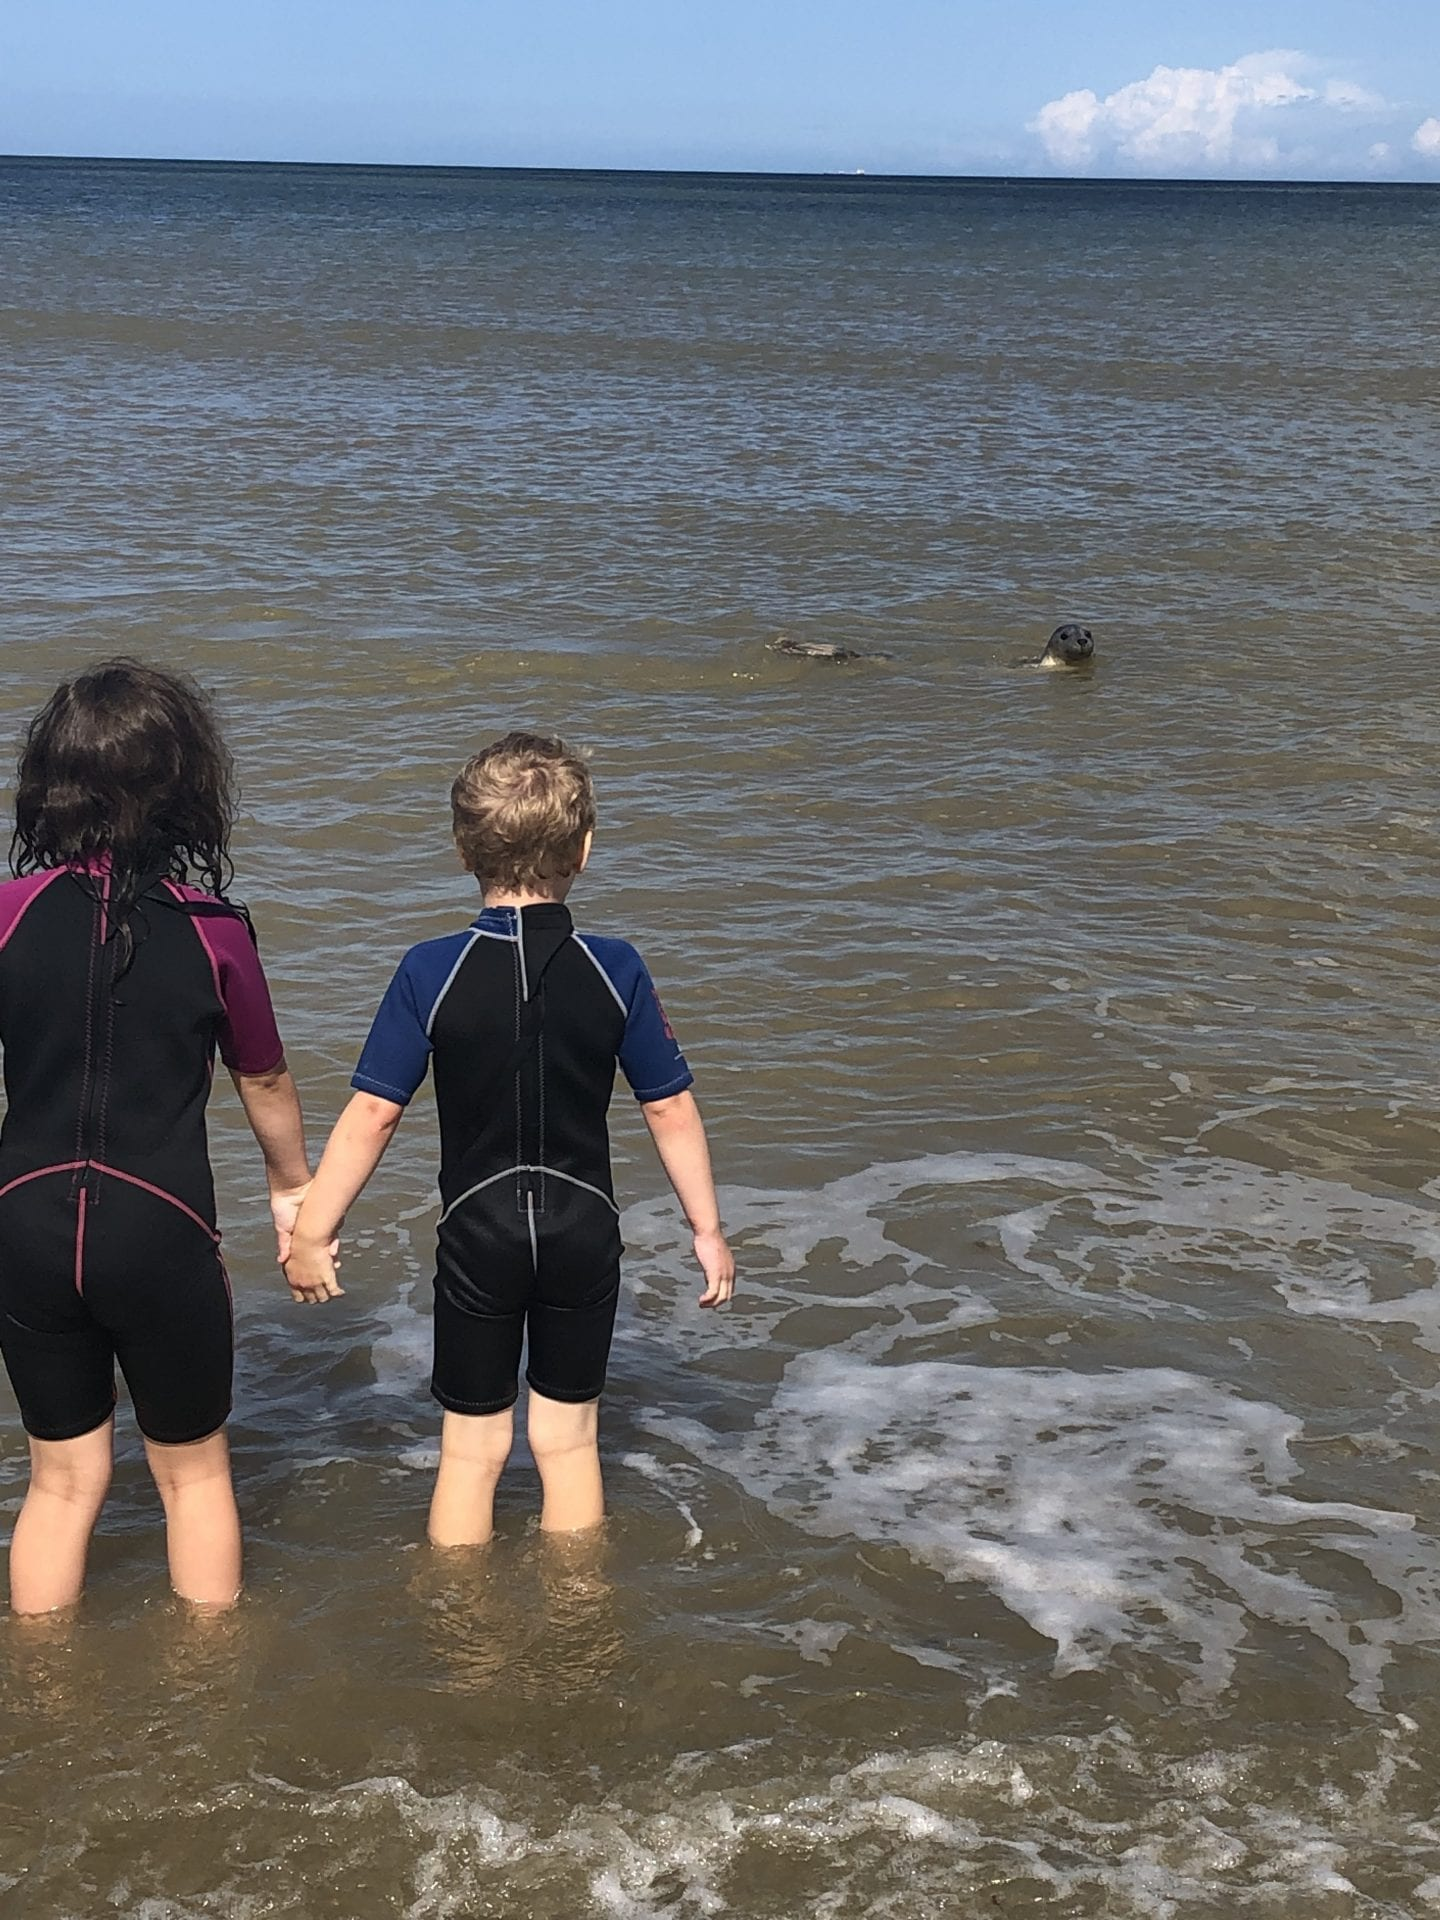 2 children standing in the sea and a seal is in the distance